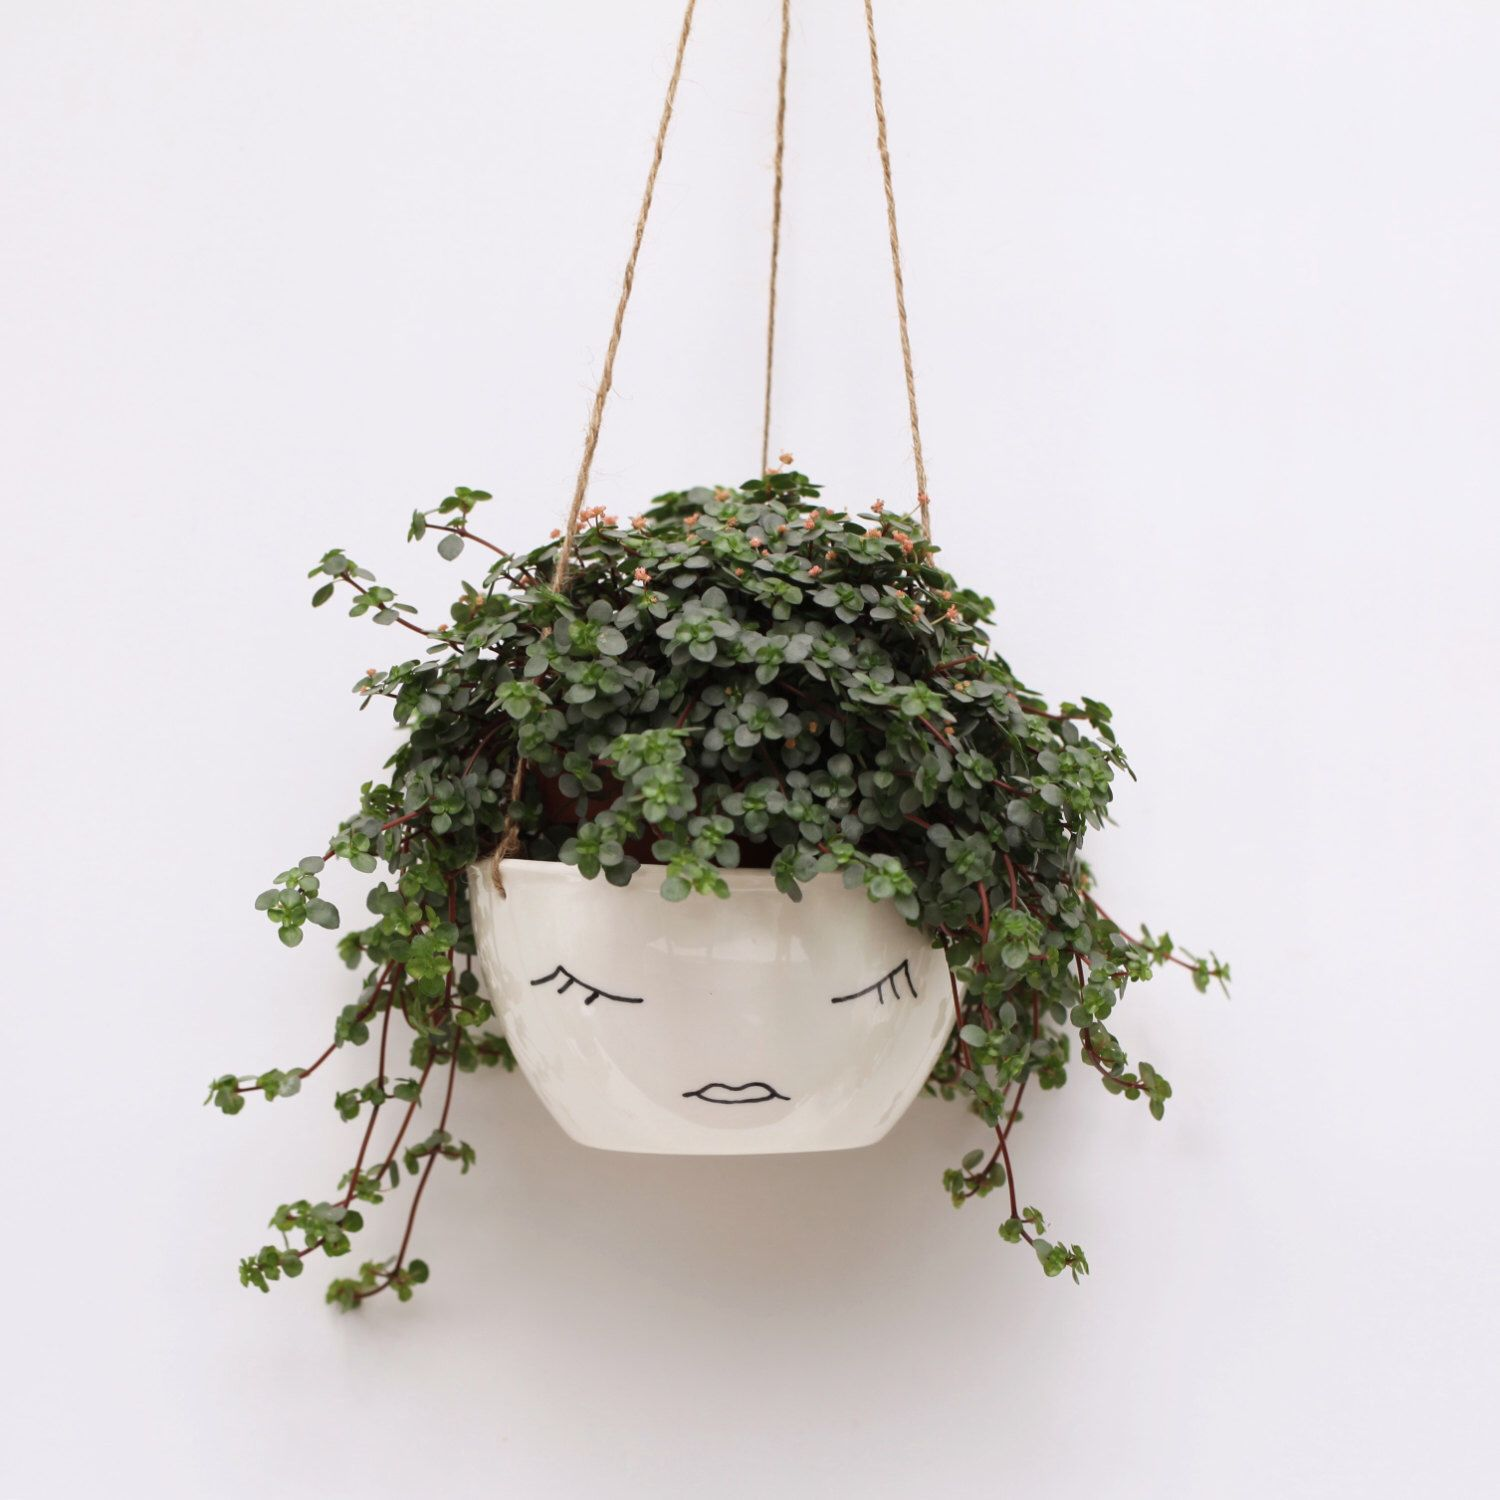 Indoor Wall Mounted Plant Holders White Ceramic Hanging Planter Face Plant Pot